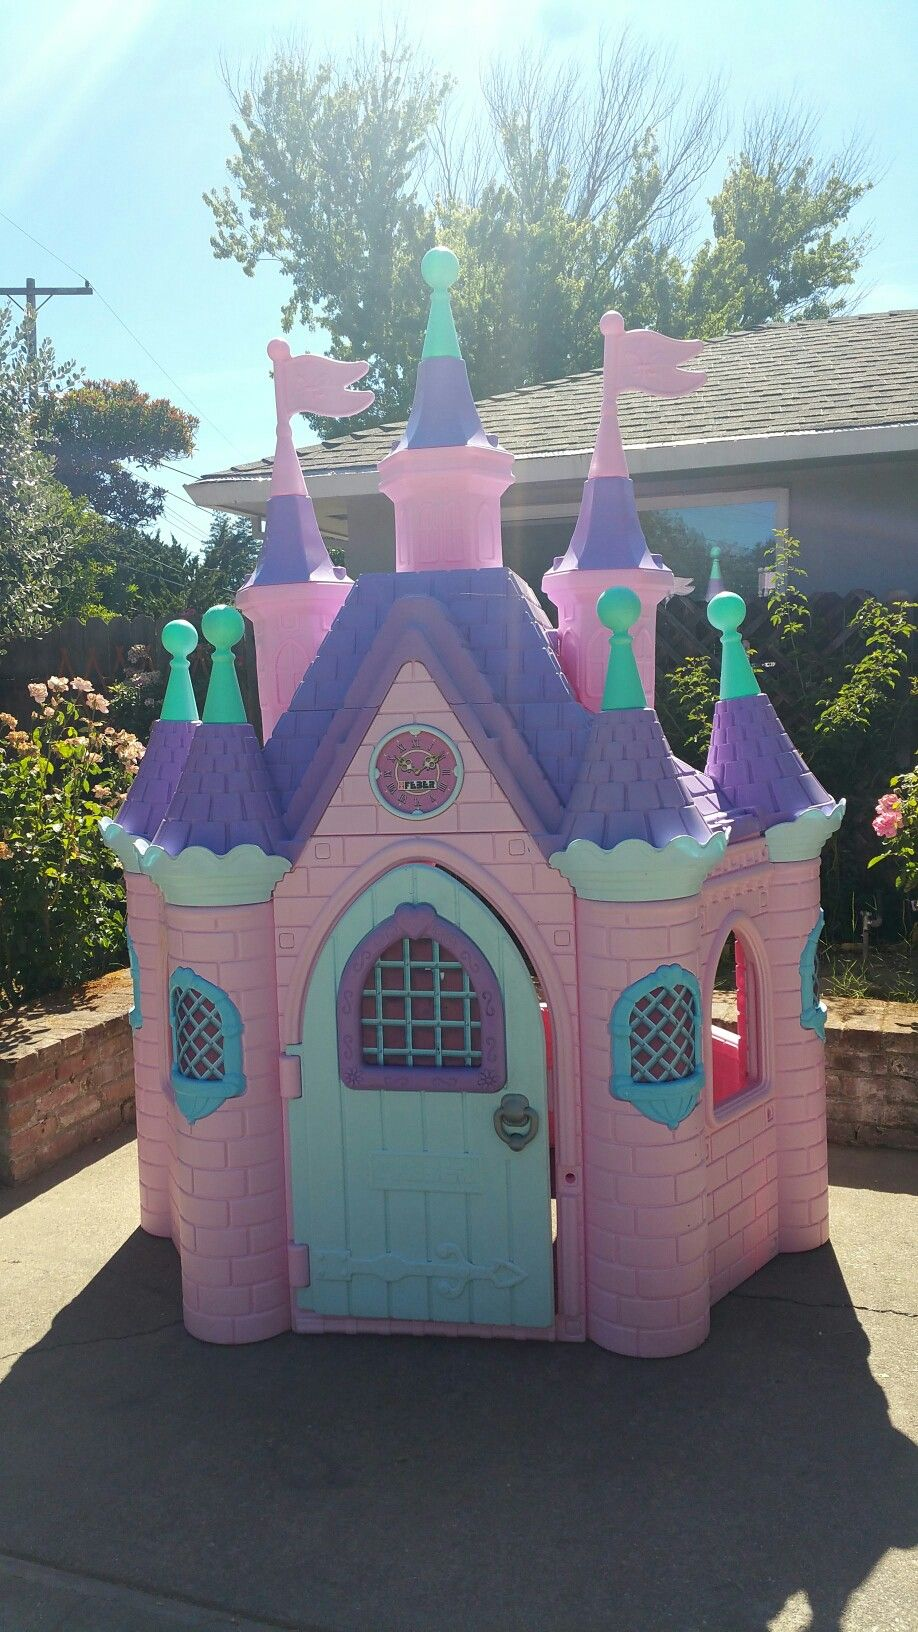 Feber Super Palace Castle Playhouse  AMAZING       Operation     Feber Super Palace Castle Playhouse  AMAZING